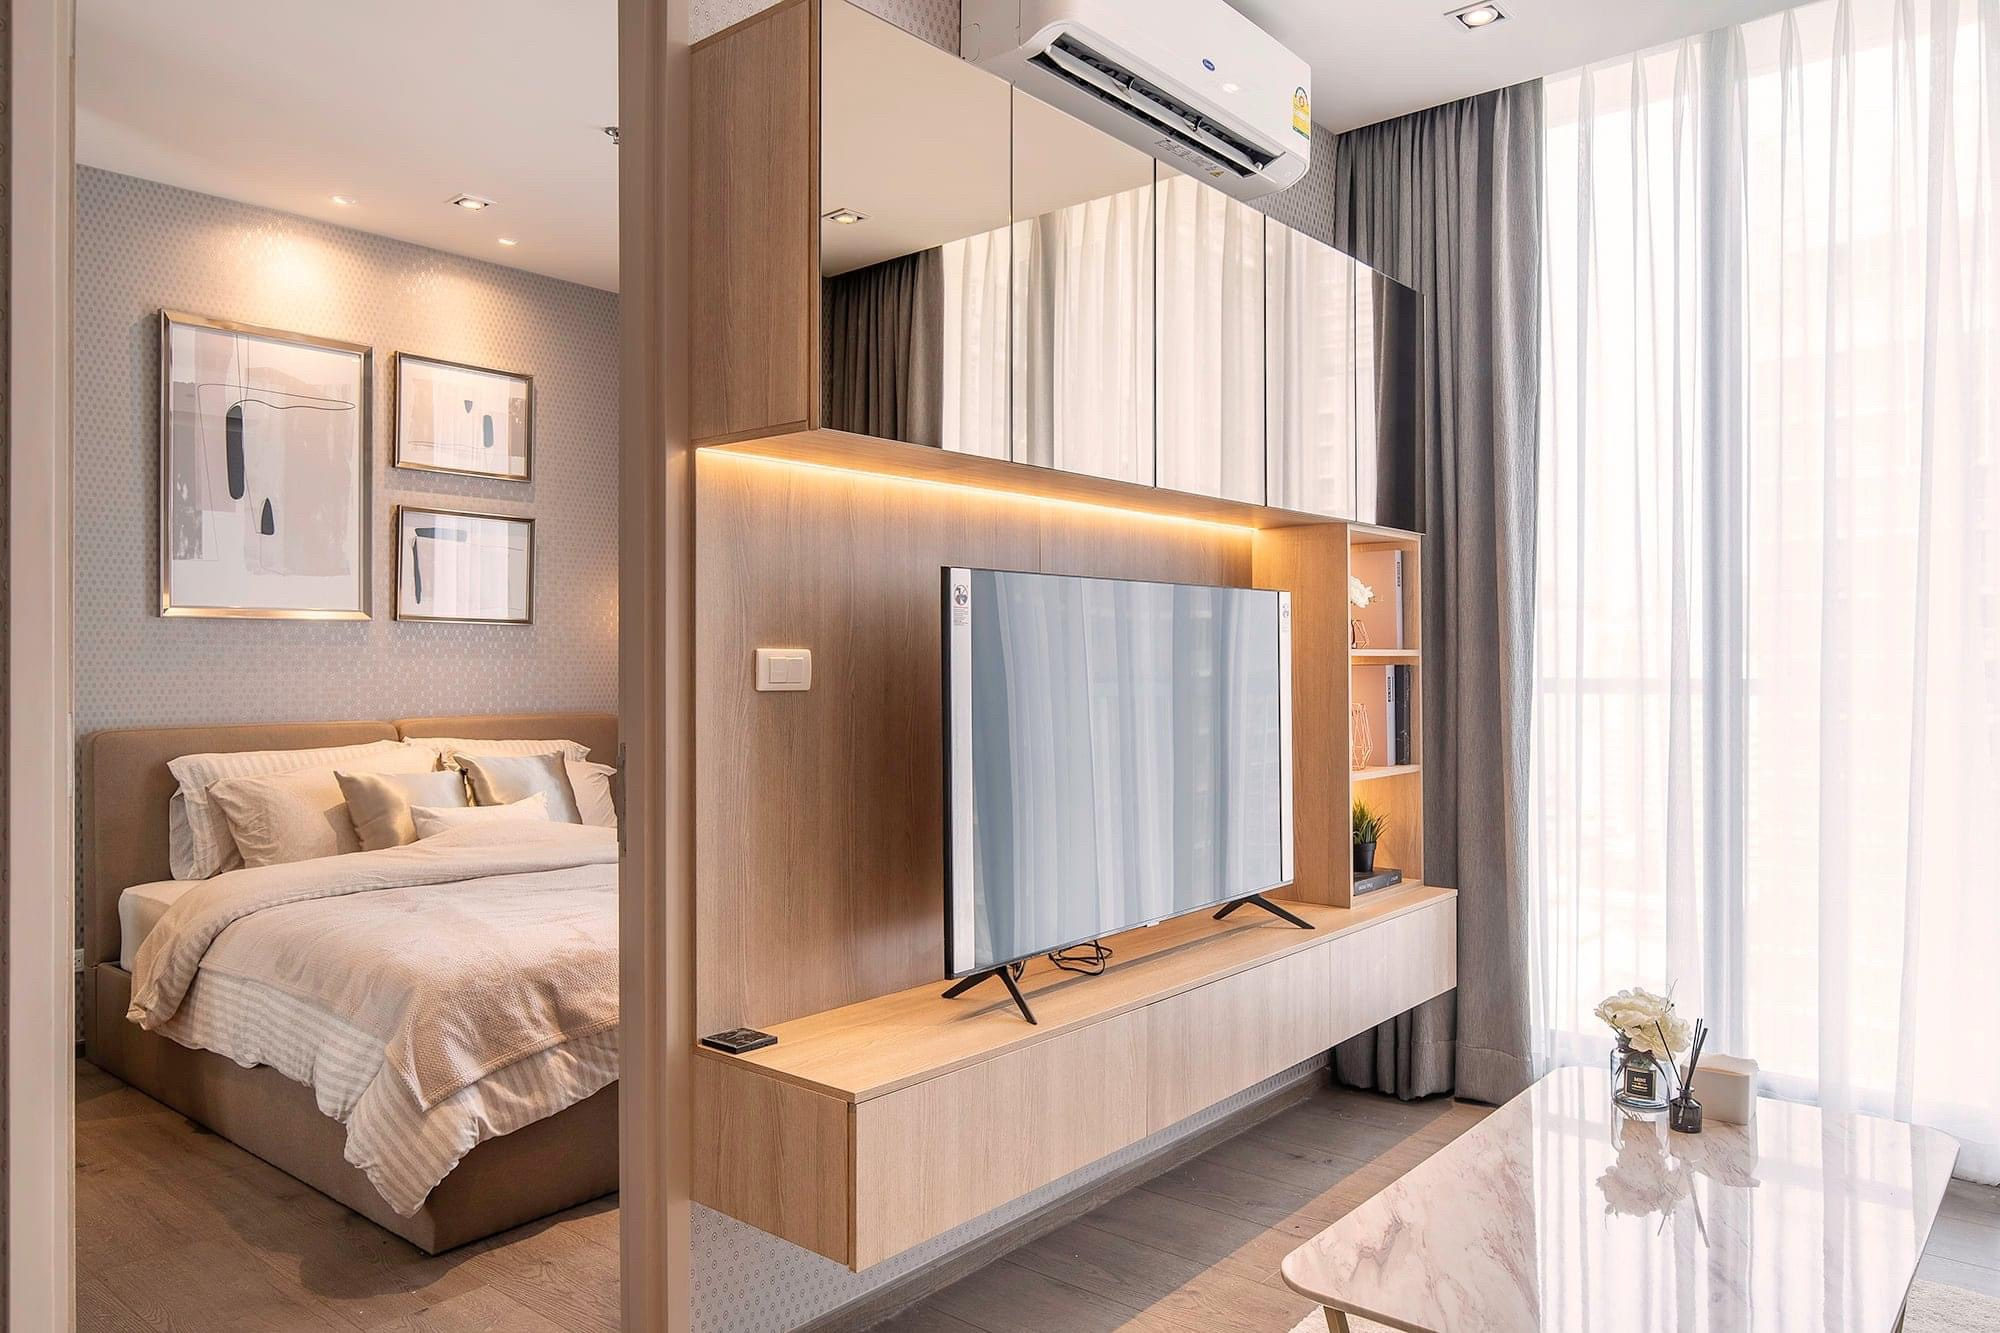 LTH3314 – Park 24 FOR RENT 1 bed 1 bath size 39 Sq.M. Nearby BTS Phrom Phong station ONLY 30k/Month